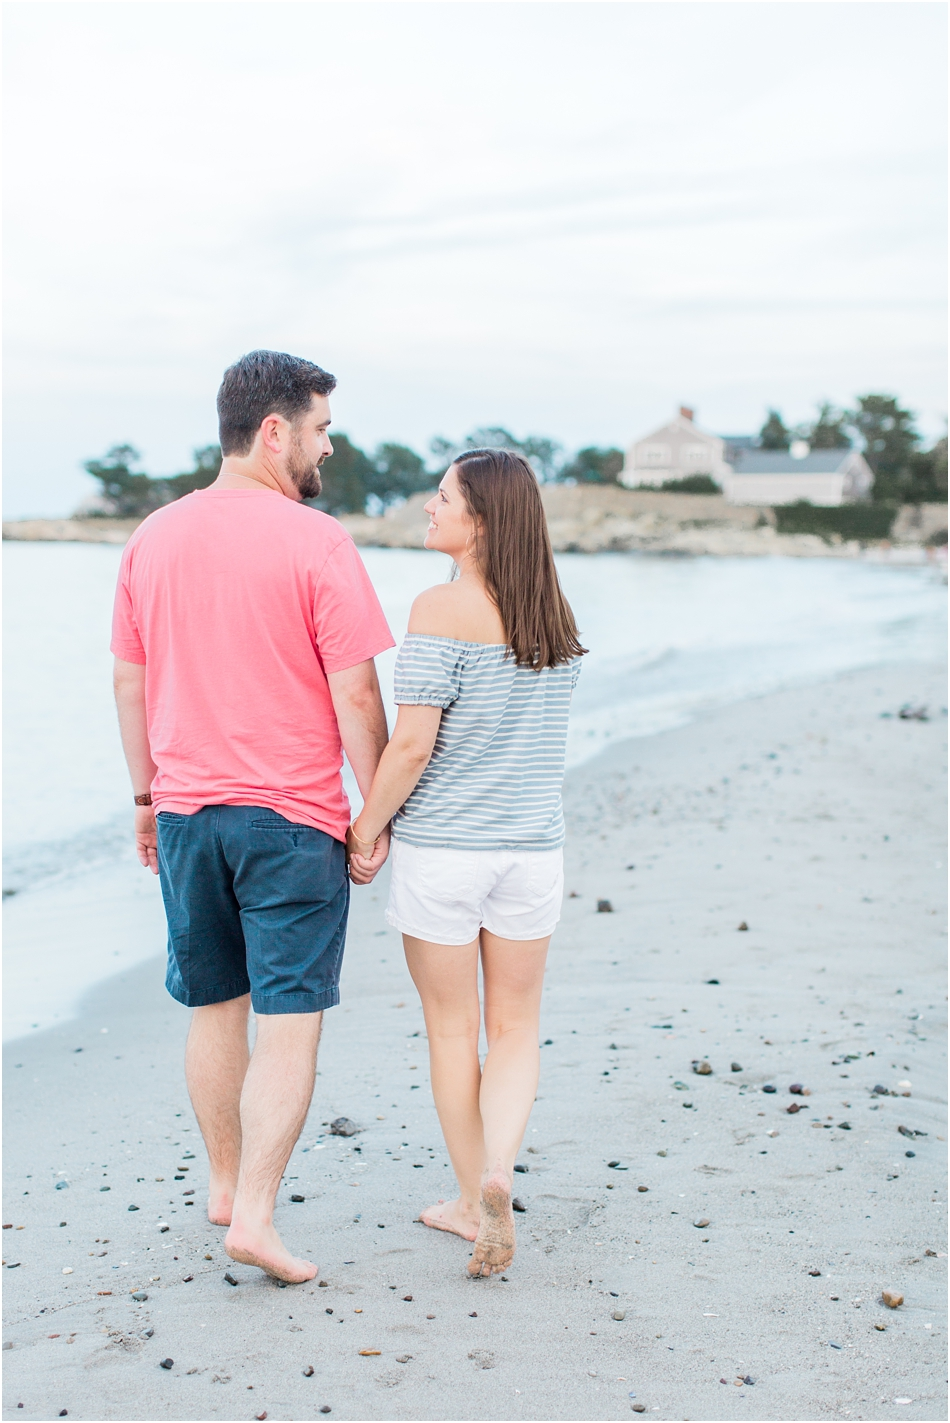 cohasset_beach_harbor_engagement_massachusetts_cape_cod_new_england_wedding_photographer_Meredith_Jane_Photography_photo_2150.jpg